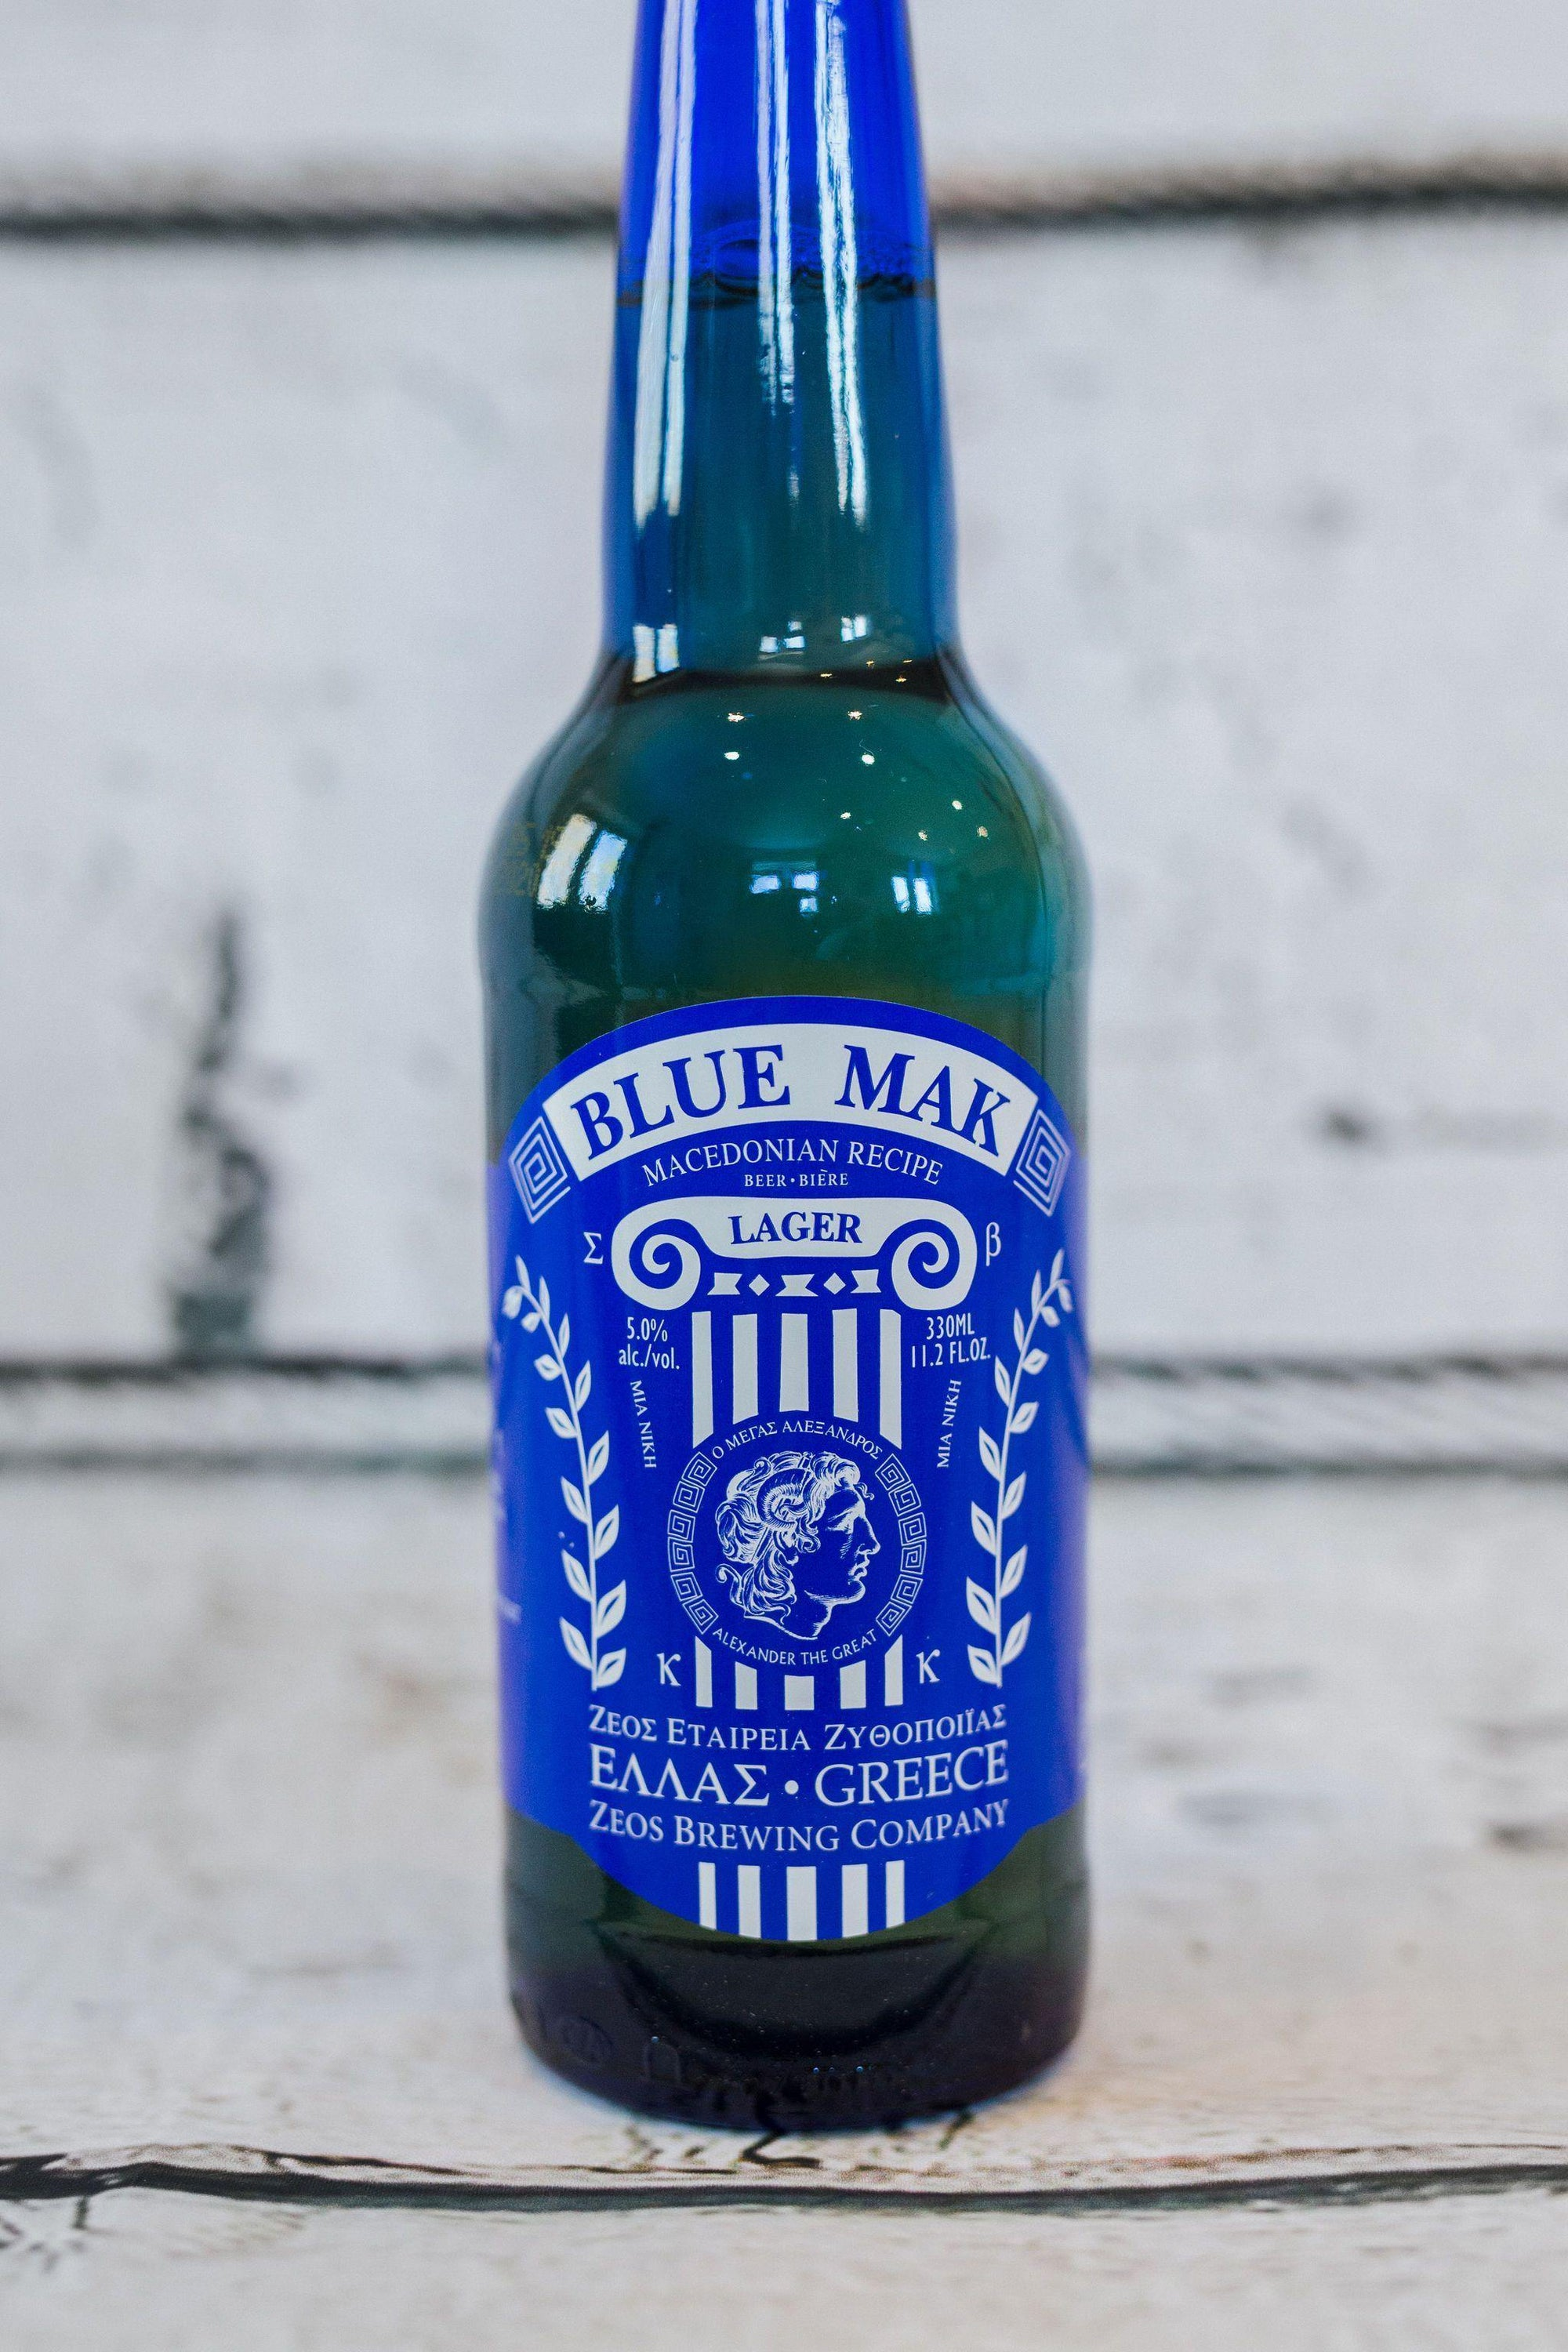 bright blue glass bottle of Blue Mak 330ml Greek beer with Alexander the Great insignia and blue bottle cap